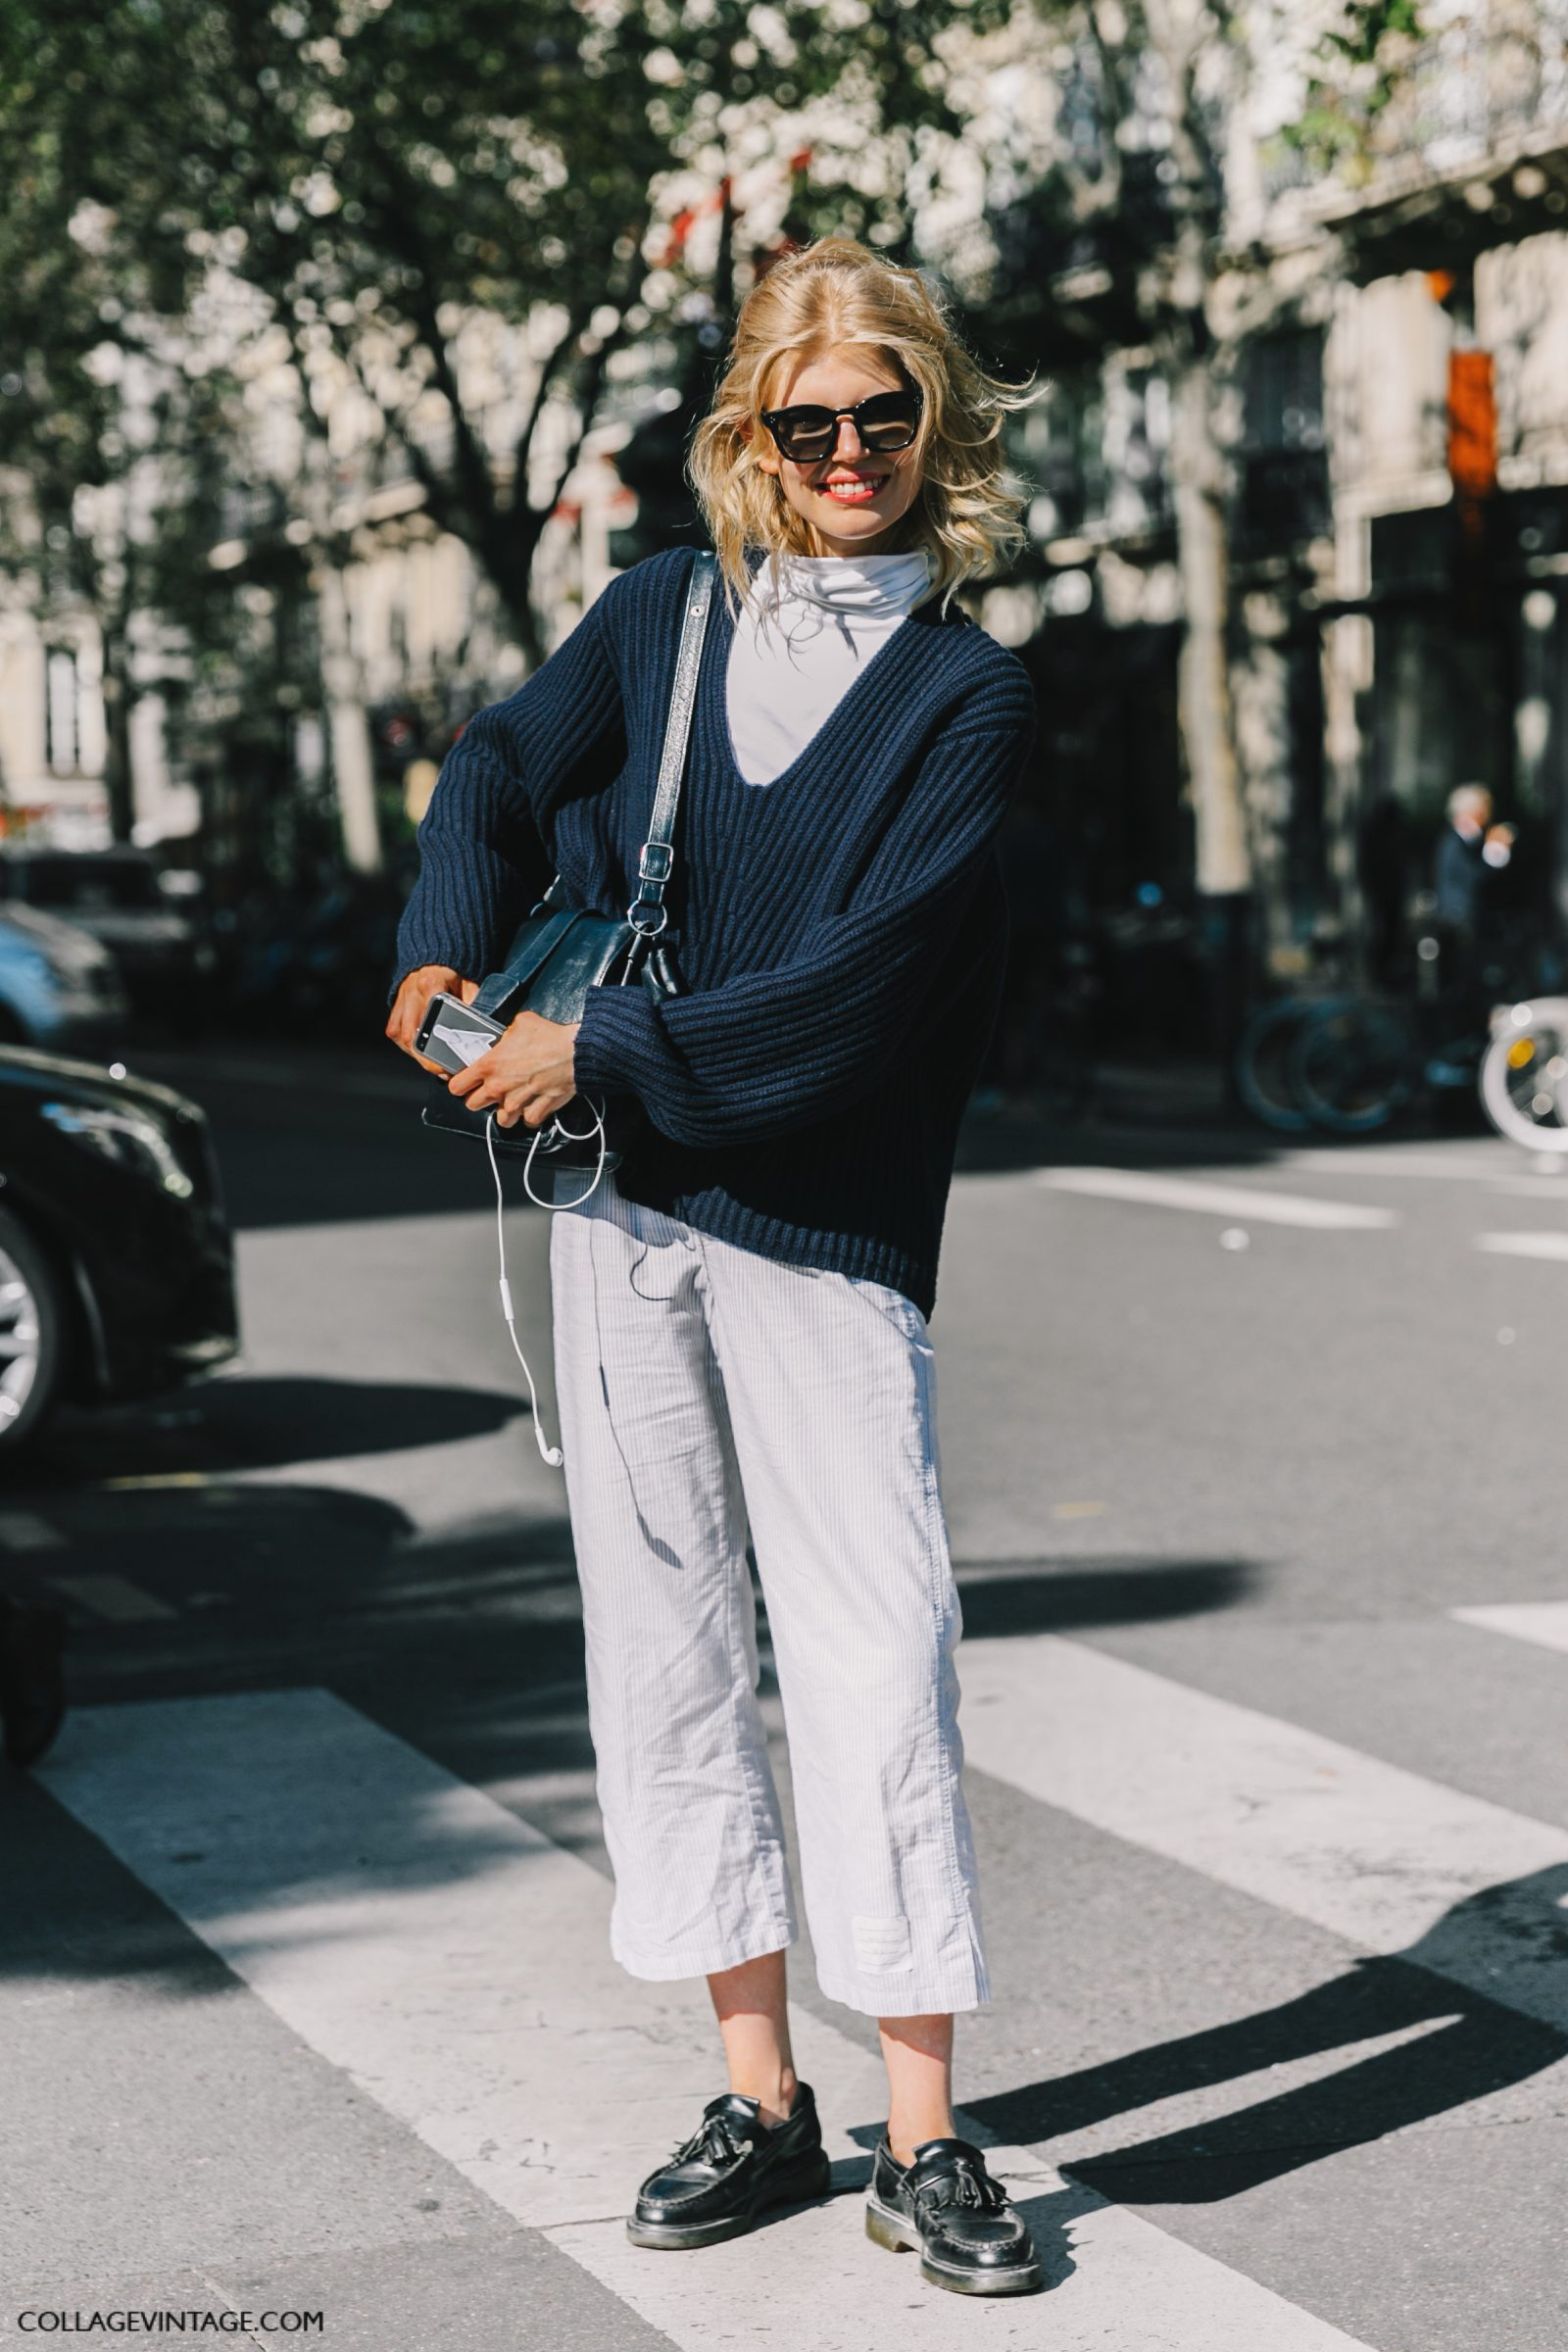 pfw-paris_fashion_week_ss17-street_style-outfits-collage_vintage-chanel-ellery-142